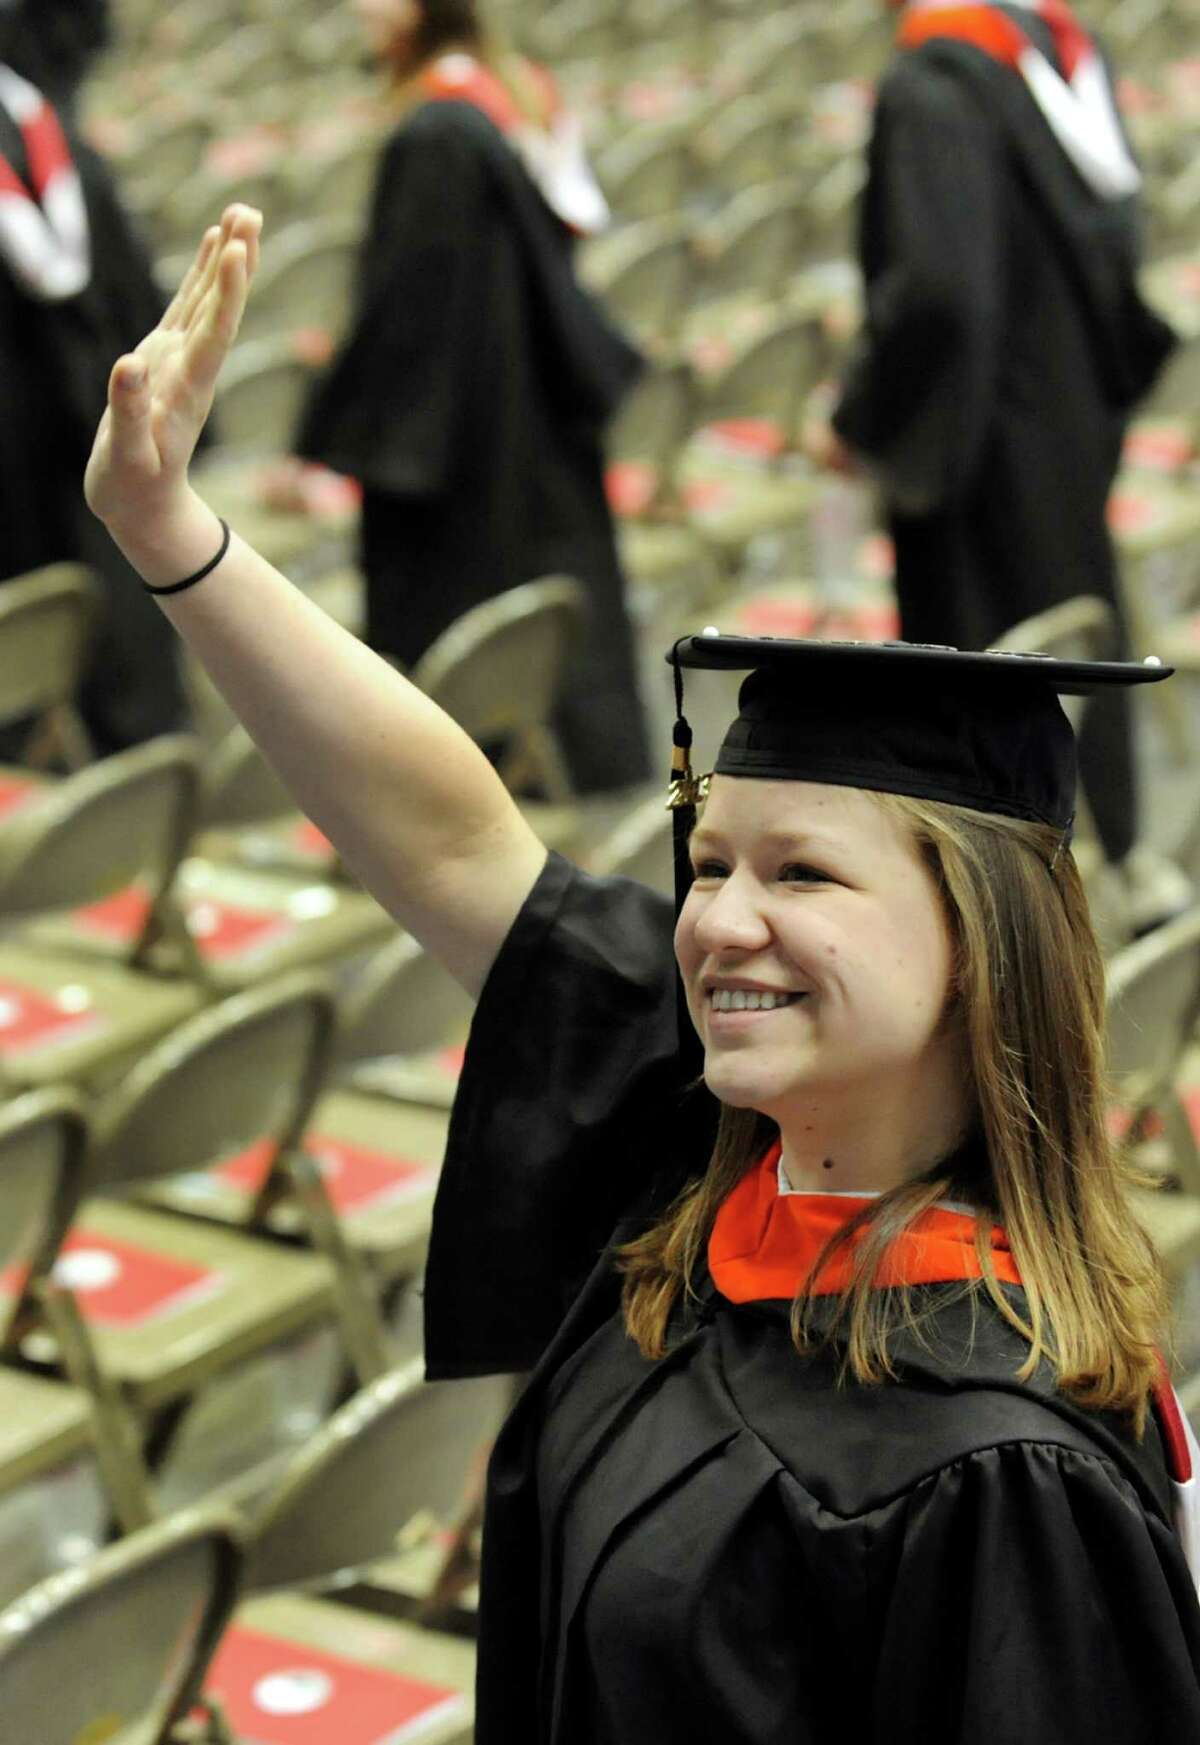 Graduate Paulina Bukanowska waves to loved ones during RPI college commencement on Saturday, May 25, 2013, at Rensselaer Polytechnic Institute in Troy, N.Y. (Cindy Schultz / Times Union)